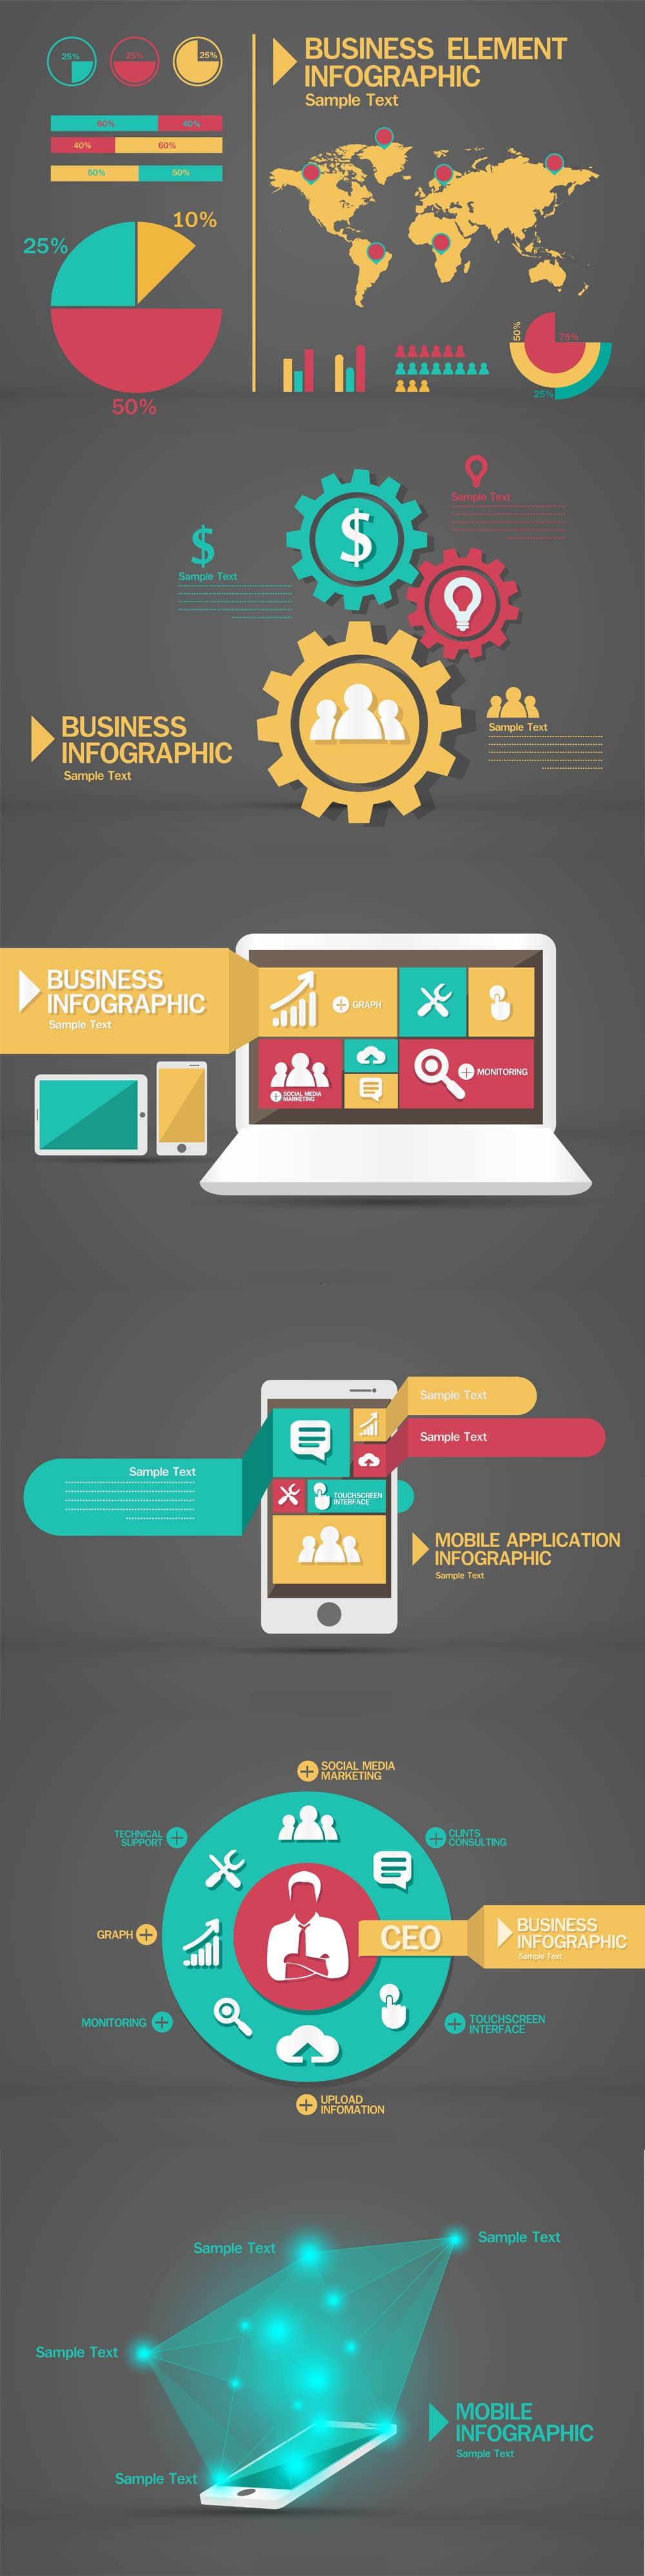 Free-Business-Infographic-Vector-Pack